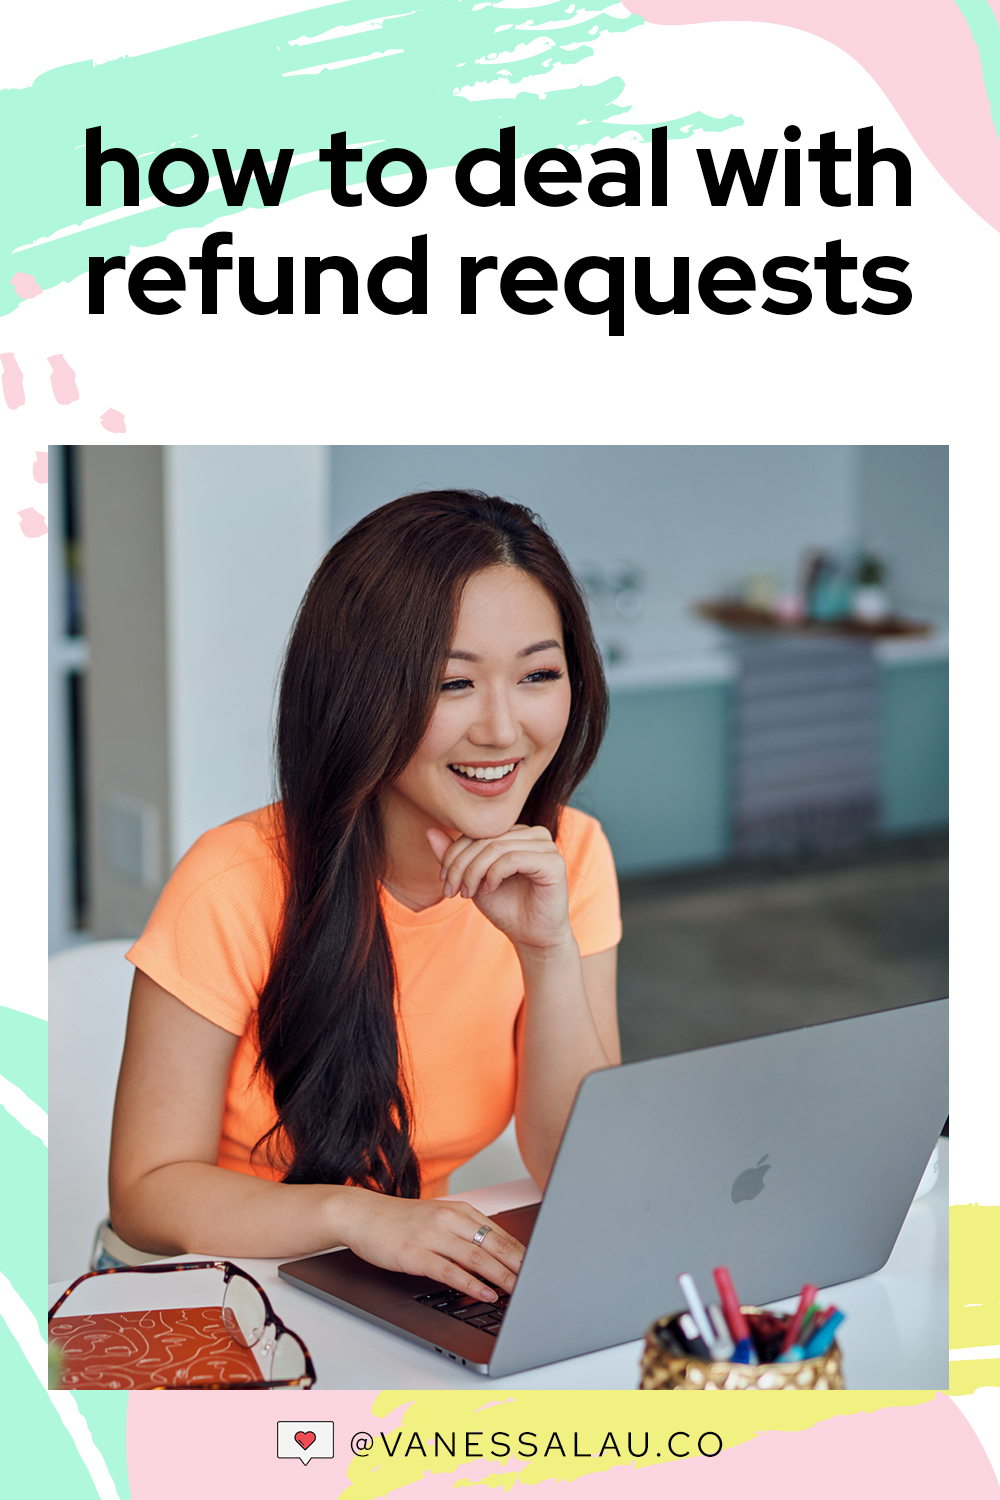 How to Deal with Refund Requests